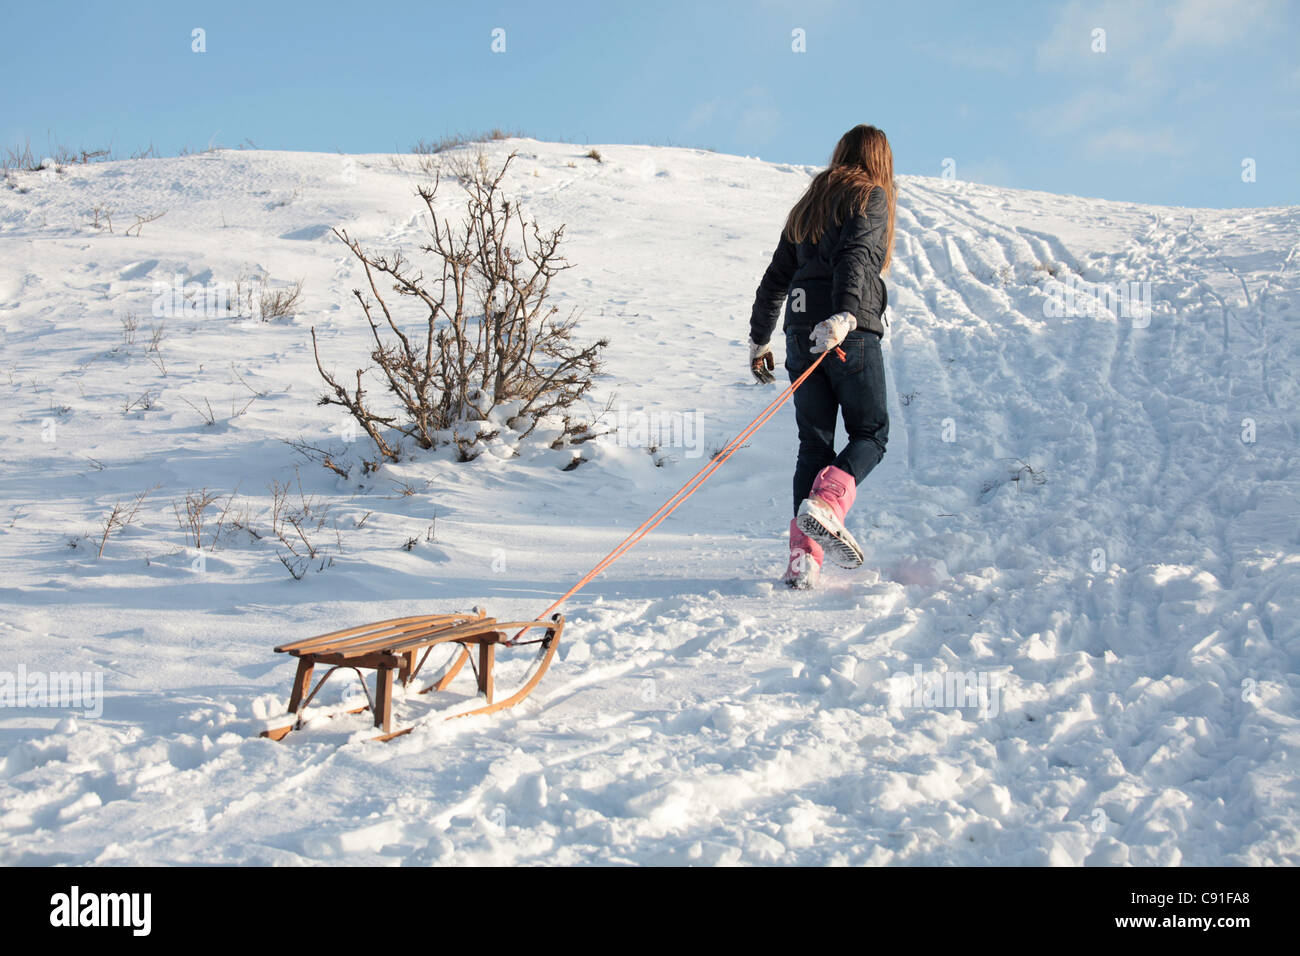 A girl is playing with her sledge in the snow - Stock Image